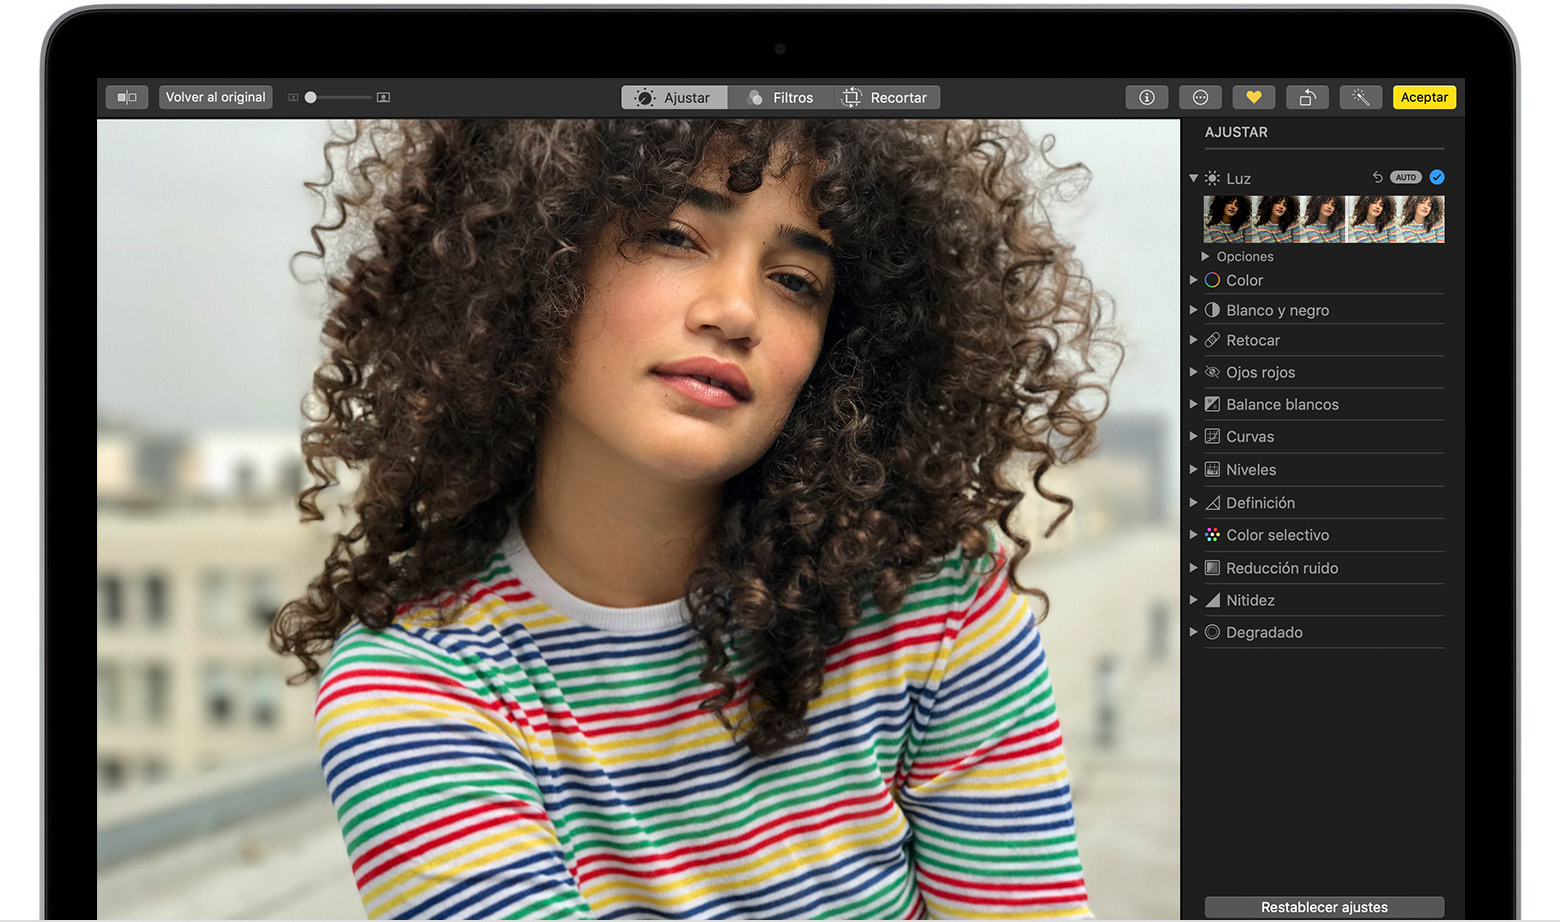 Powerful, full-featured image editor for iOS.